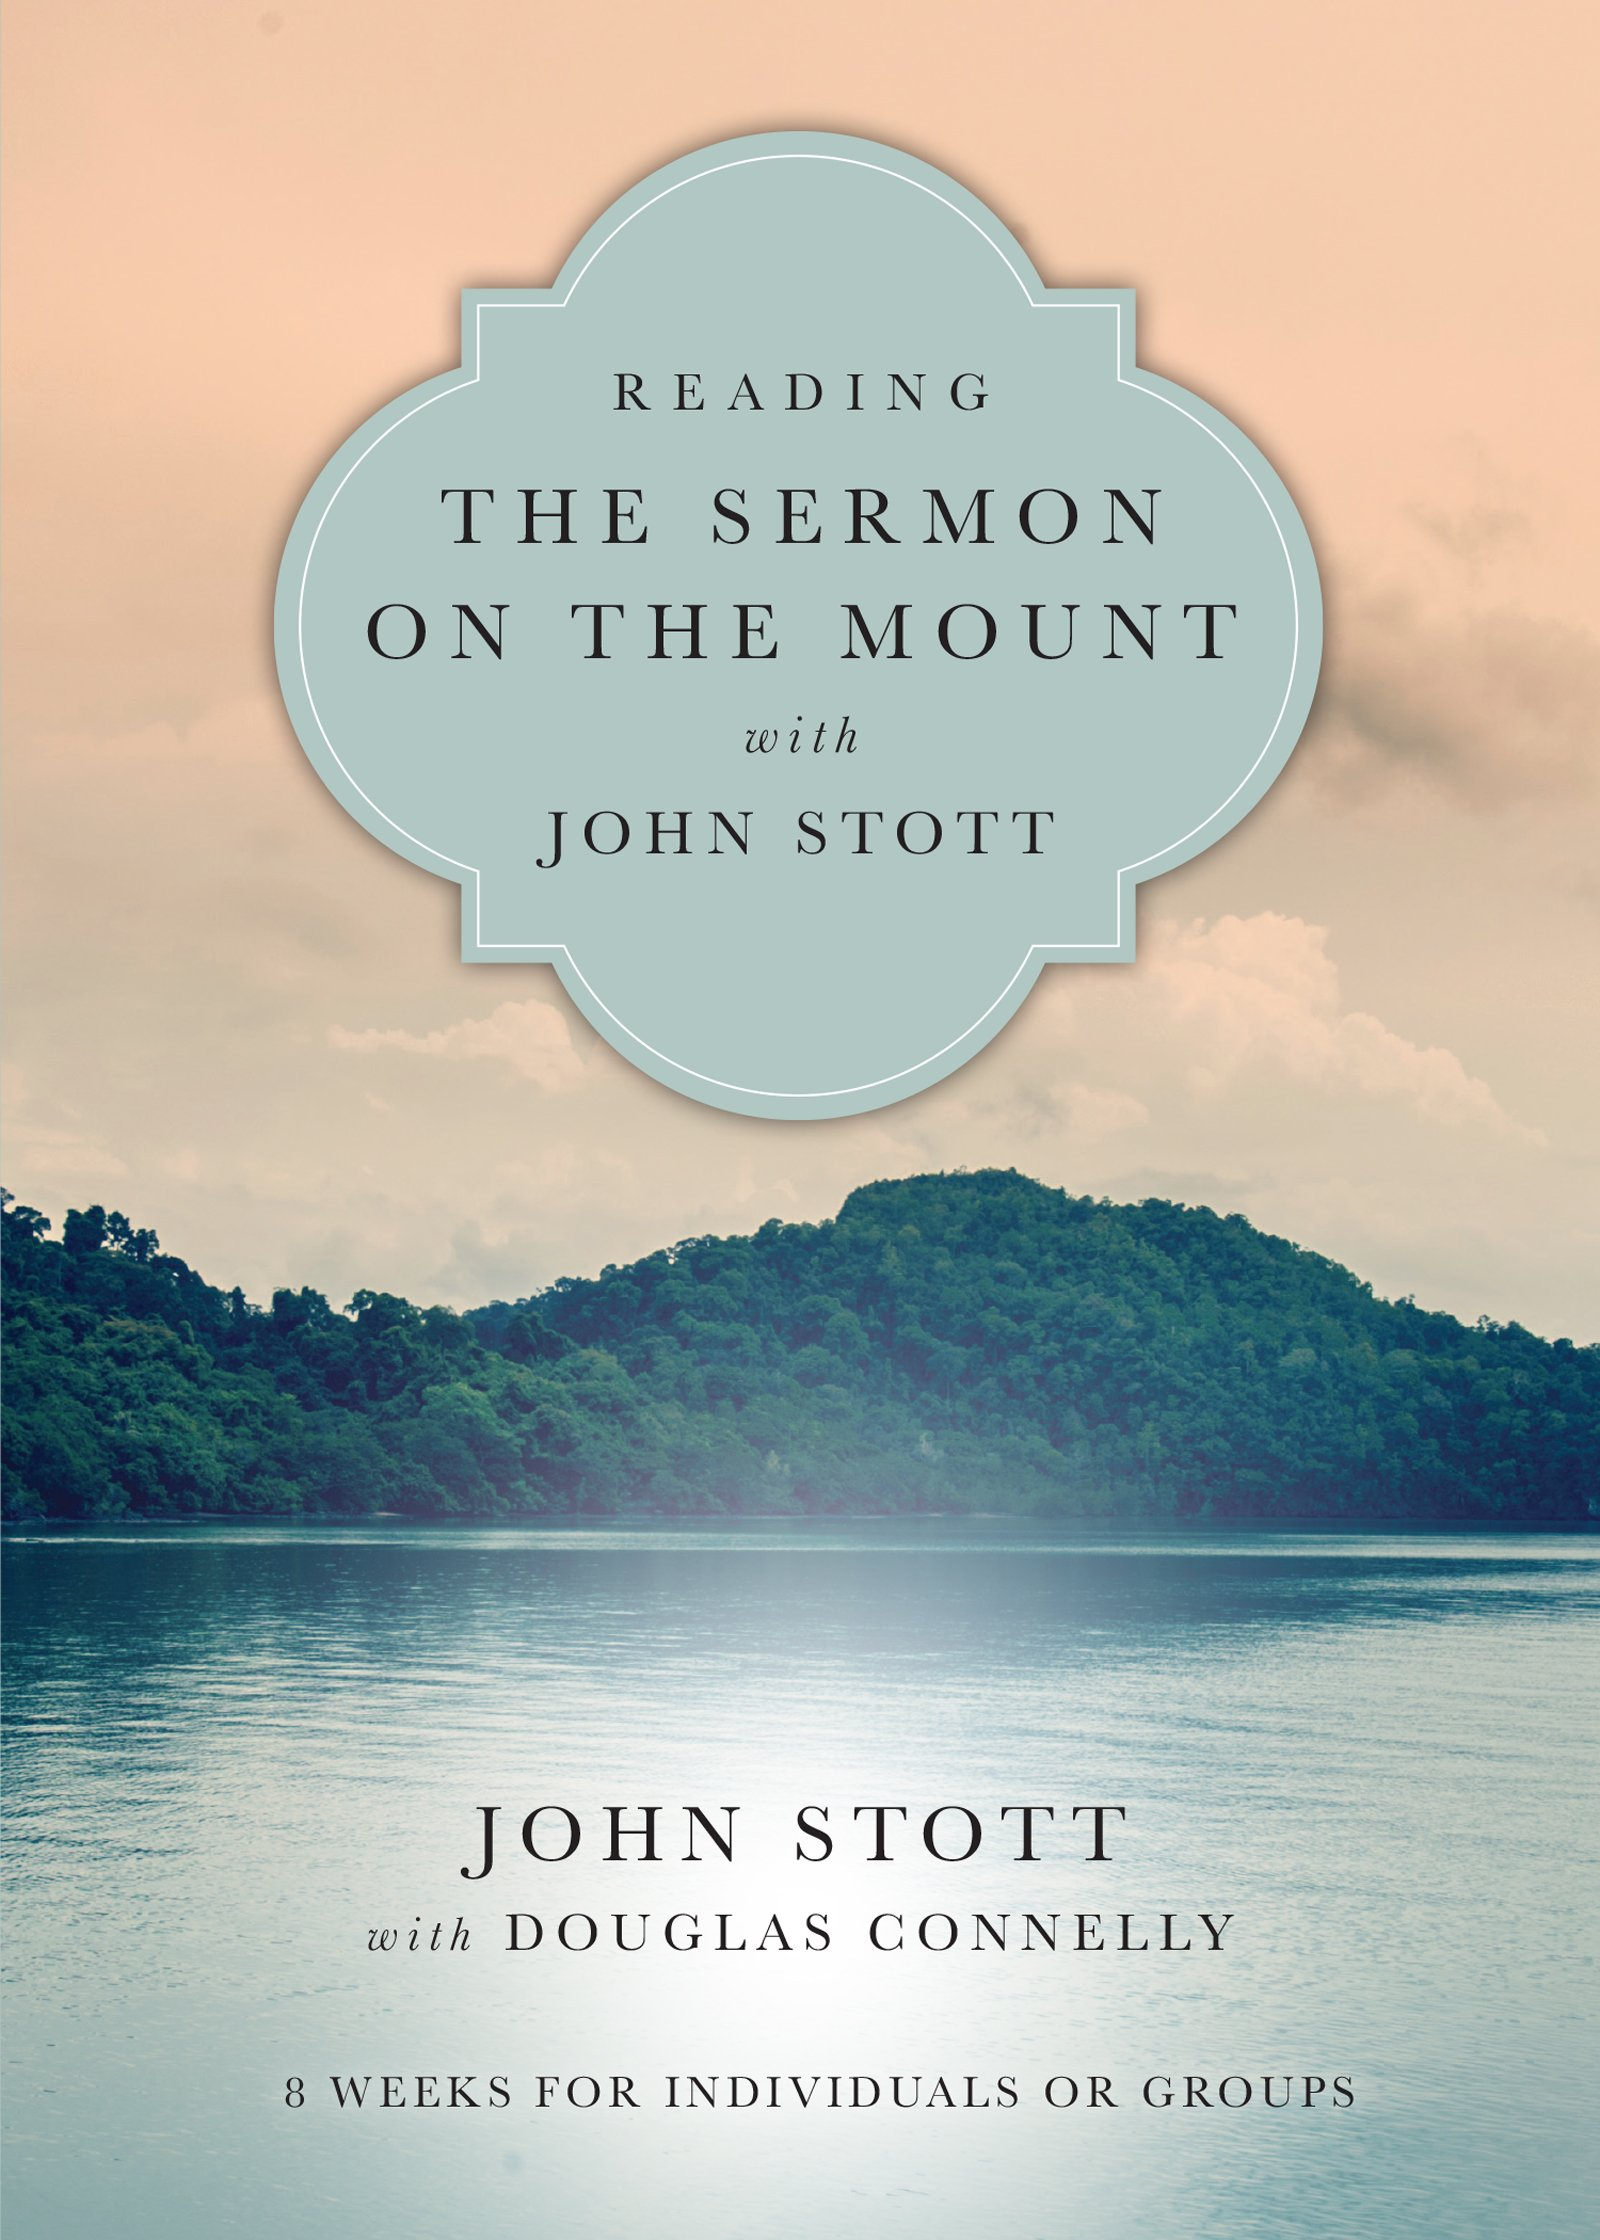 Reading the Sermon on the Mount with John Stott: 8 Weeks for Individuals or Groups (Reading the Bible with John Stott) PDF